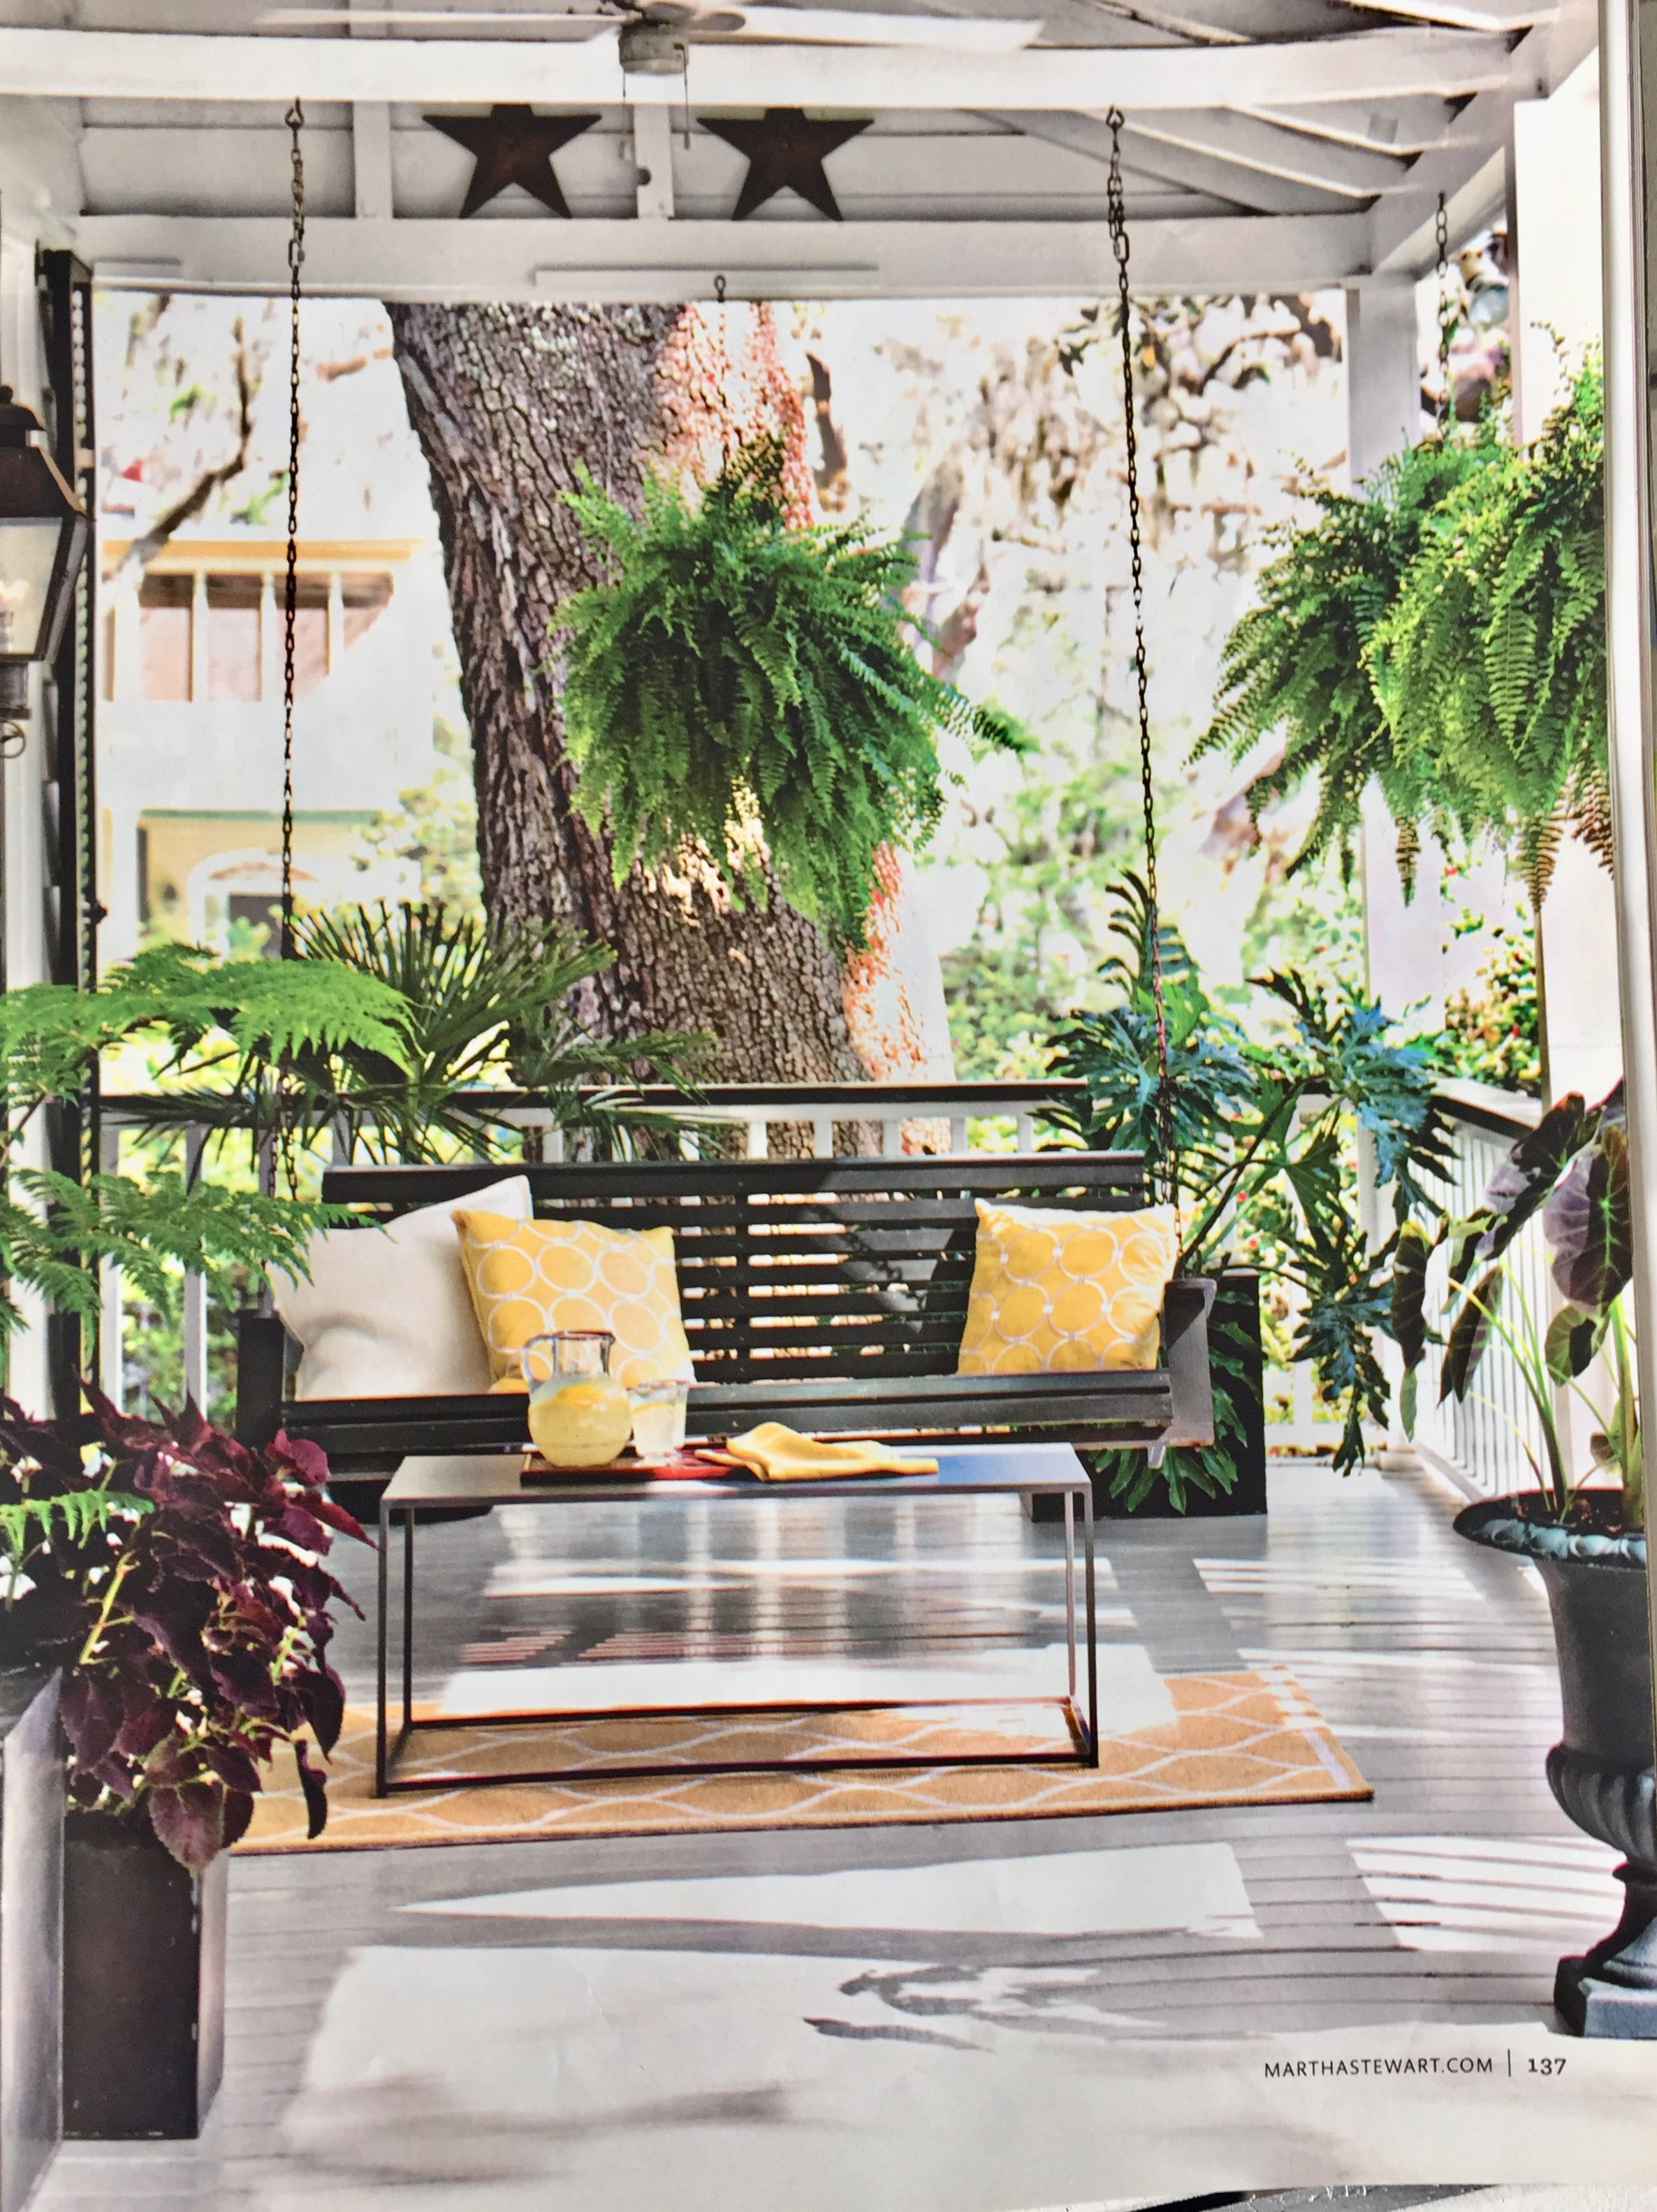 Pin by Dana Duke on home | Outdoor living space, Riverside ... on Riverside Outdoor Living id=56132